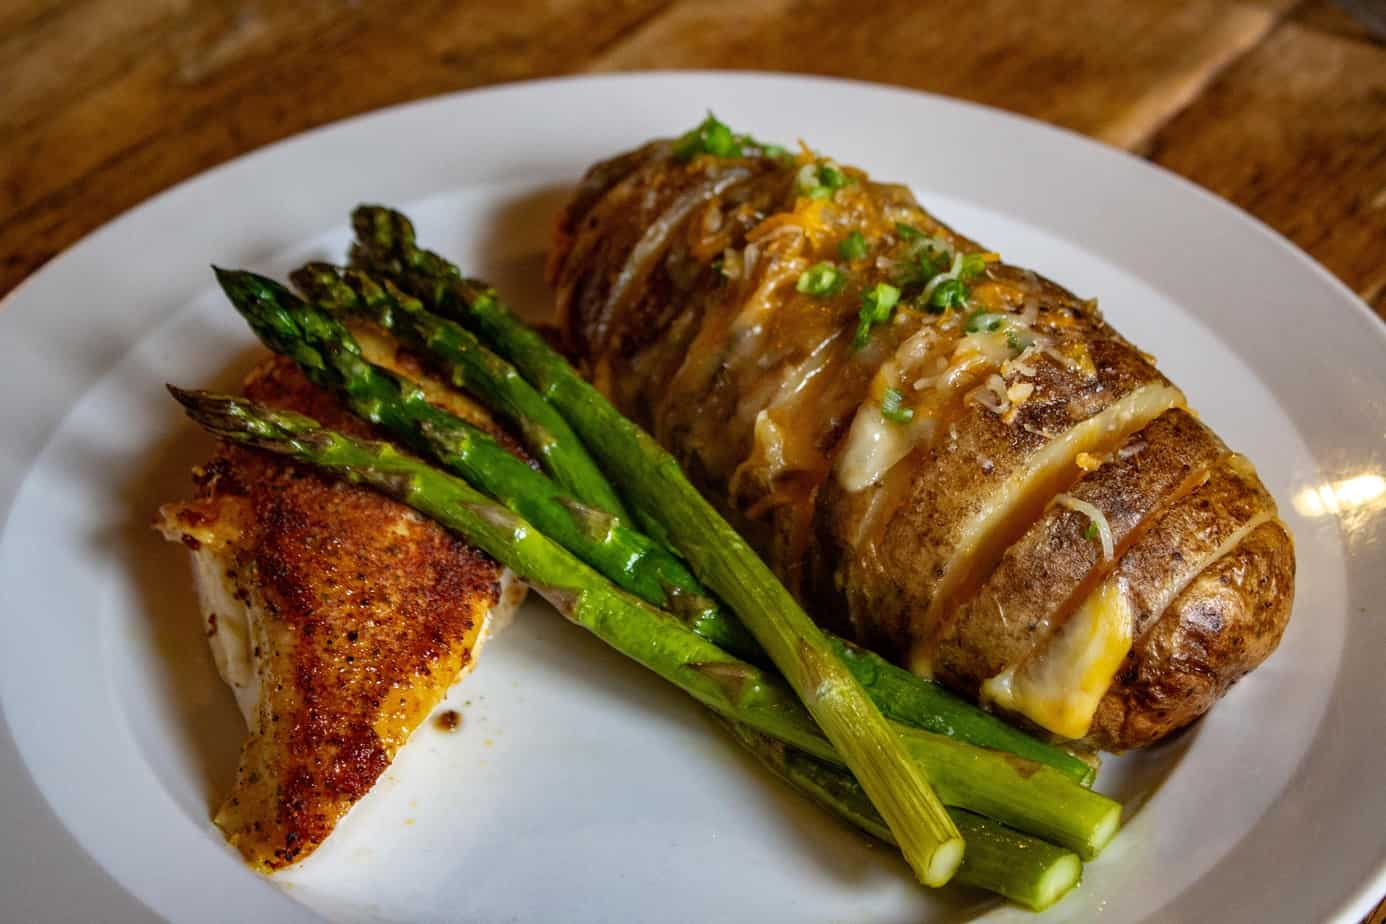 Smoked Whole Chicken Breast with Asparagus and Hasselback Potatoes